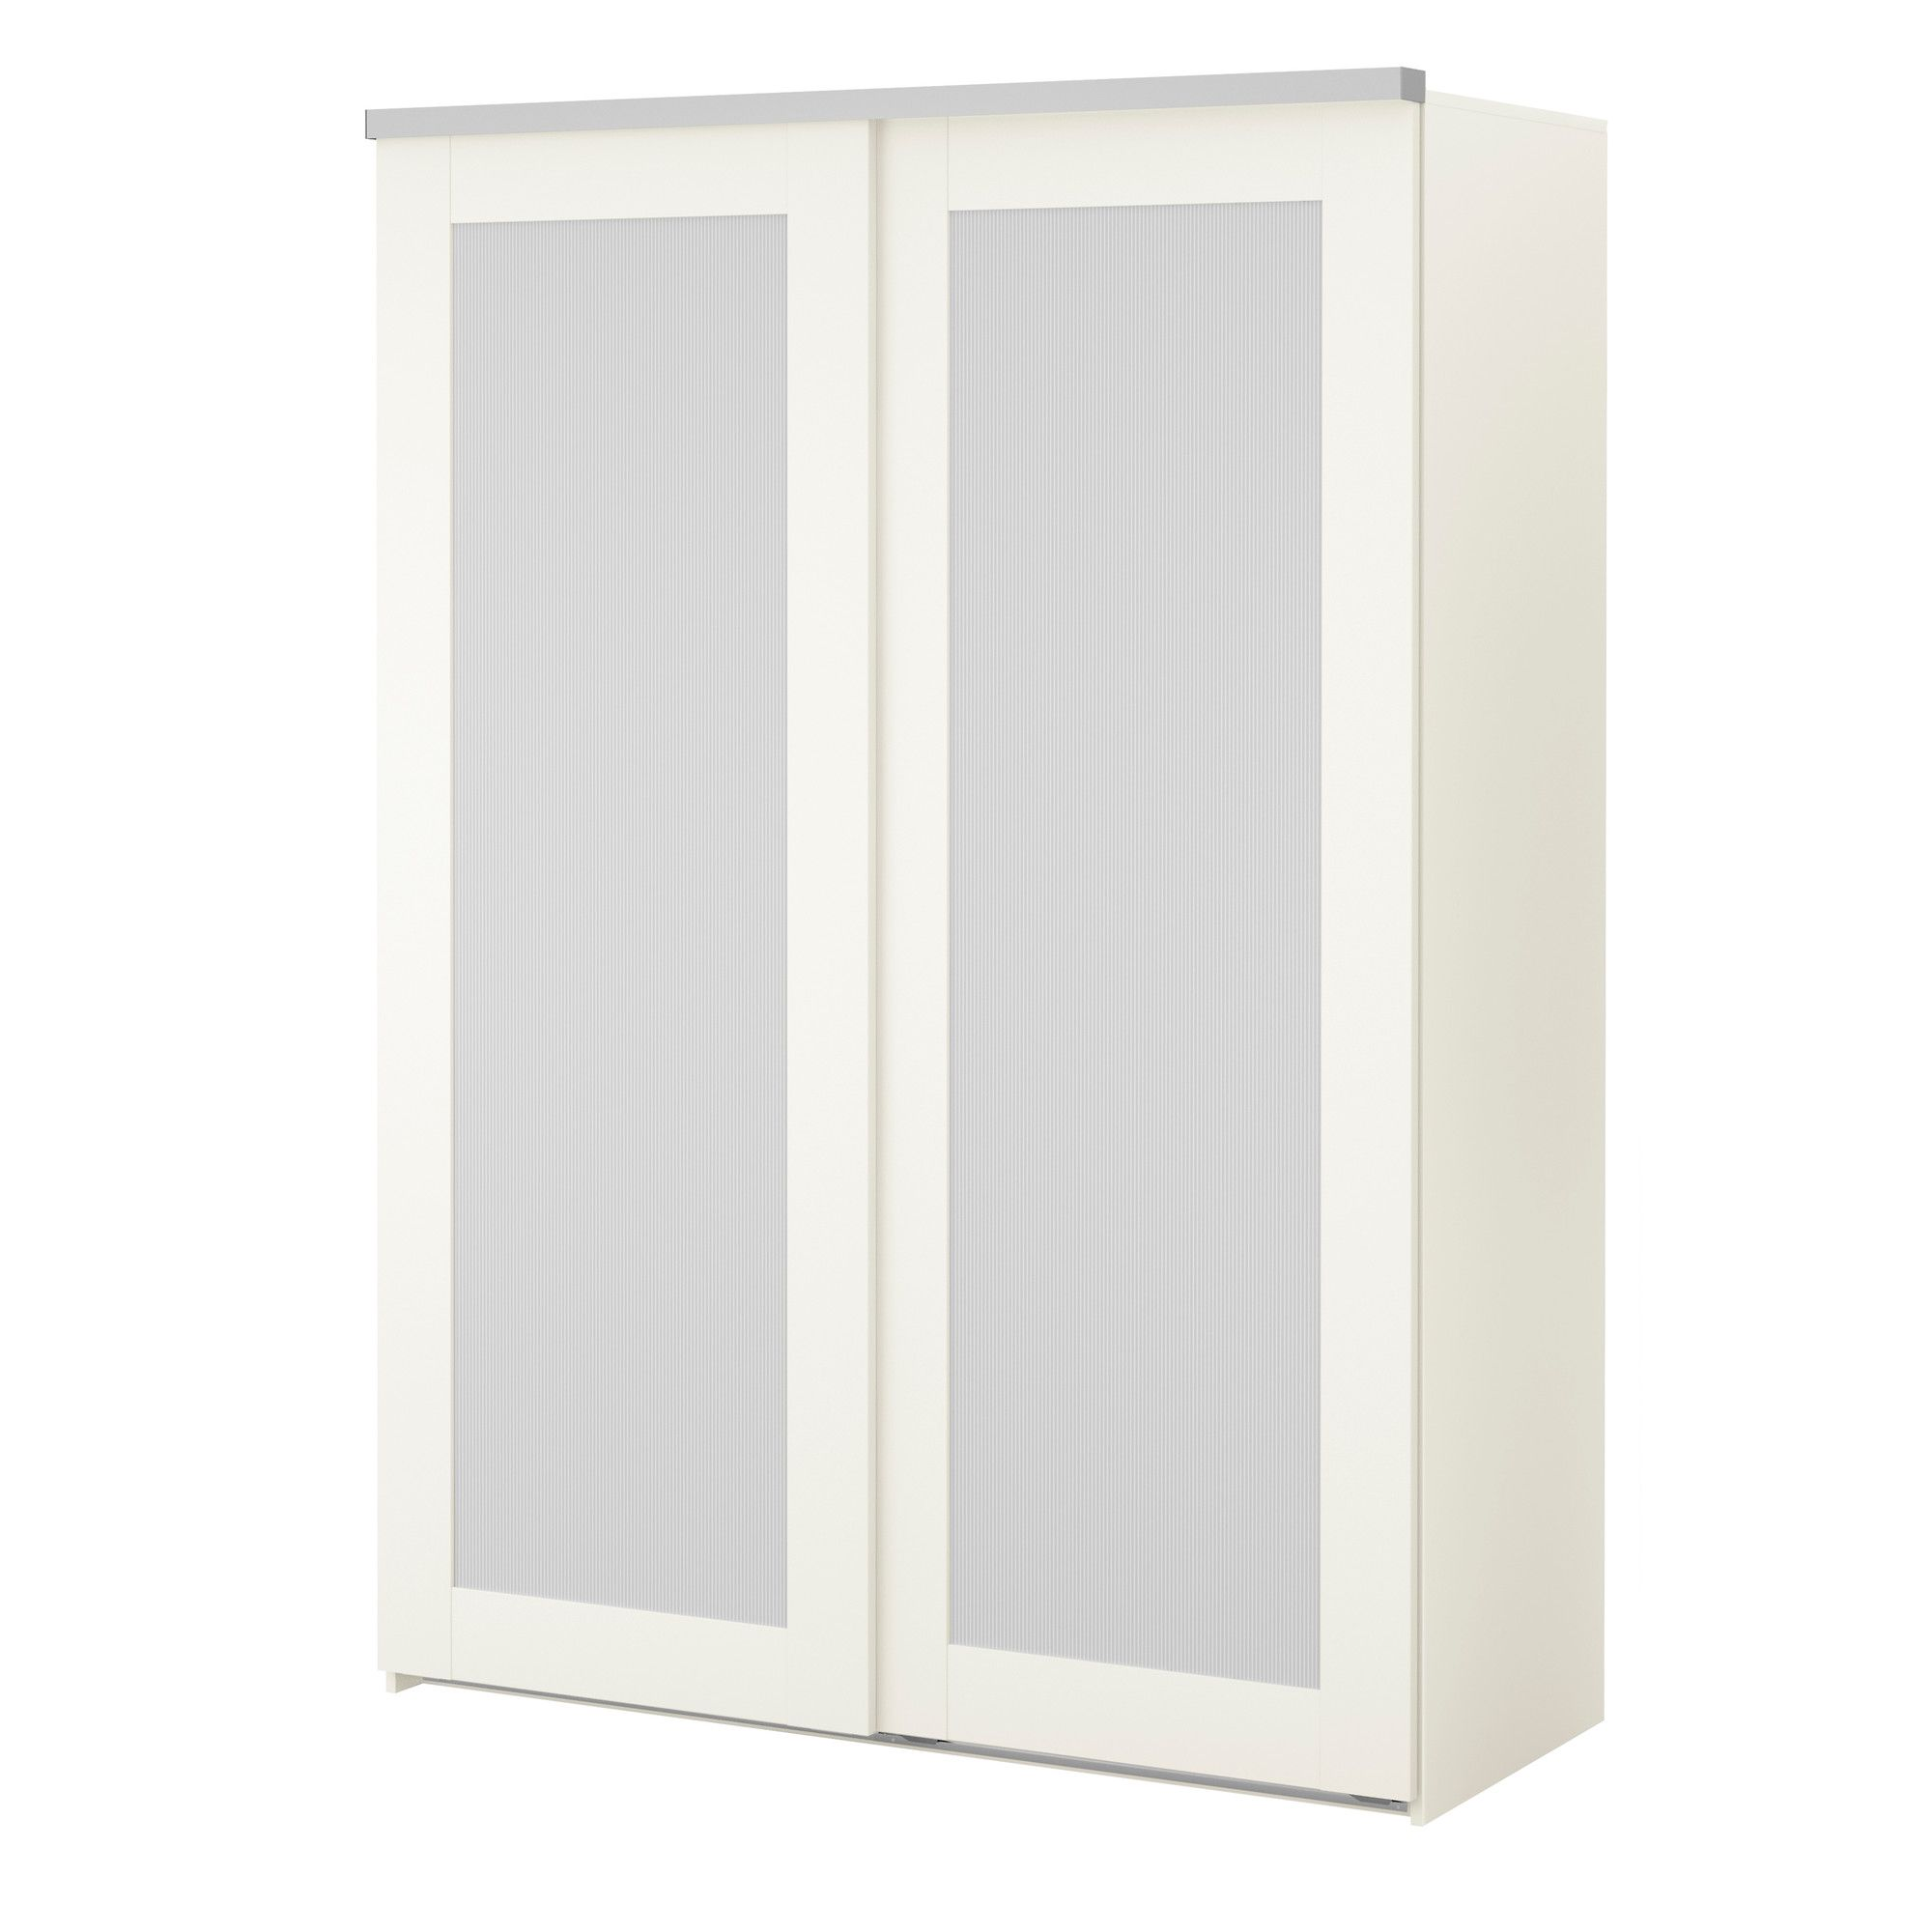 Perfect ELGÅ Wardrobe With 2 Sliding Doors   White/Aneboda White   IKEA Amazing Design